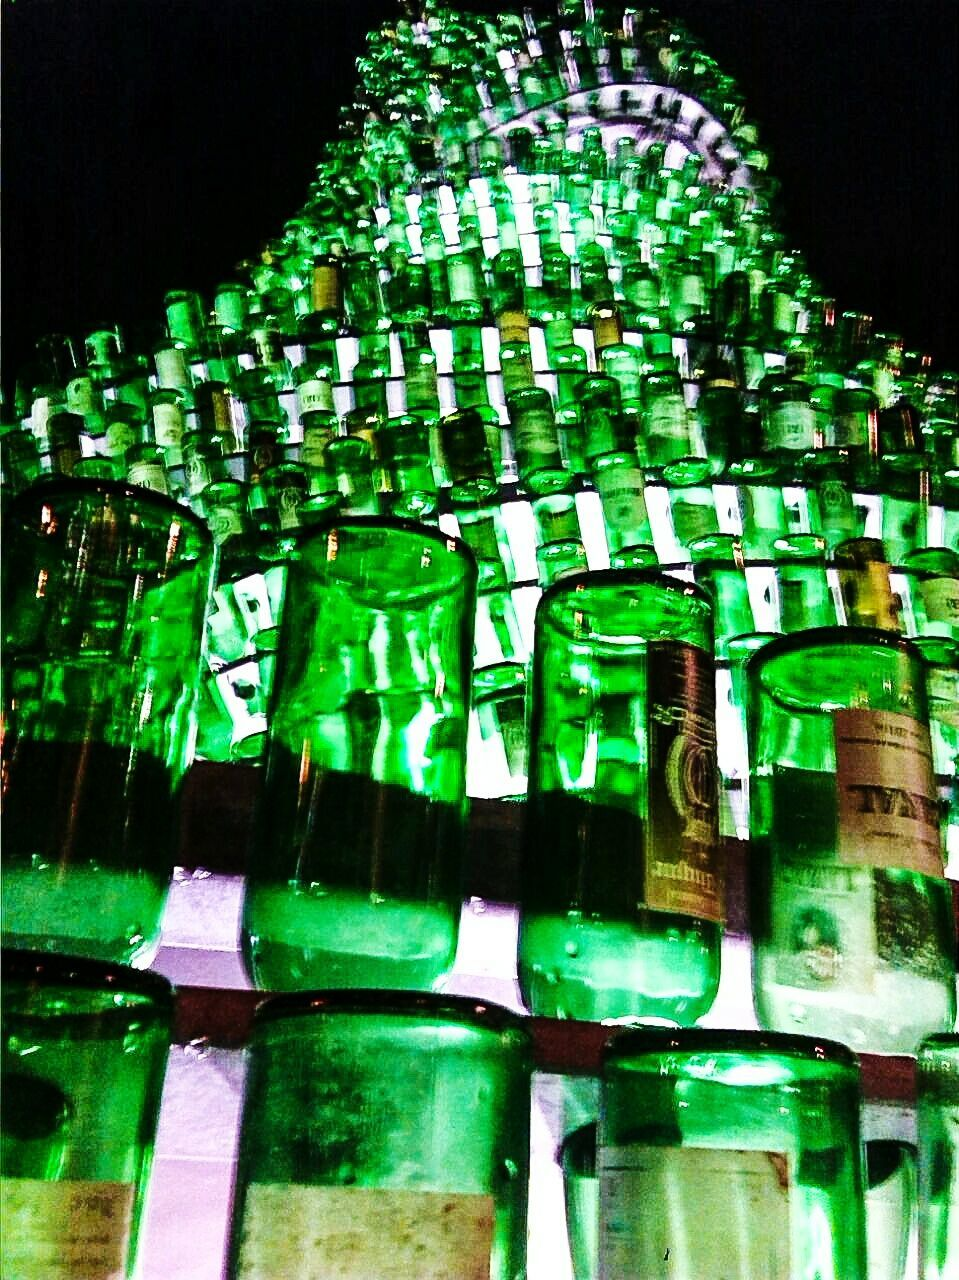 night, no people, illuminated, green color, low angle view, water, outdoors, close-up